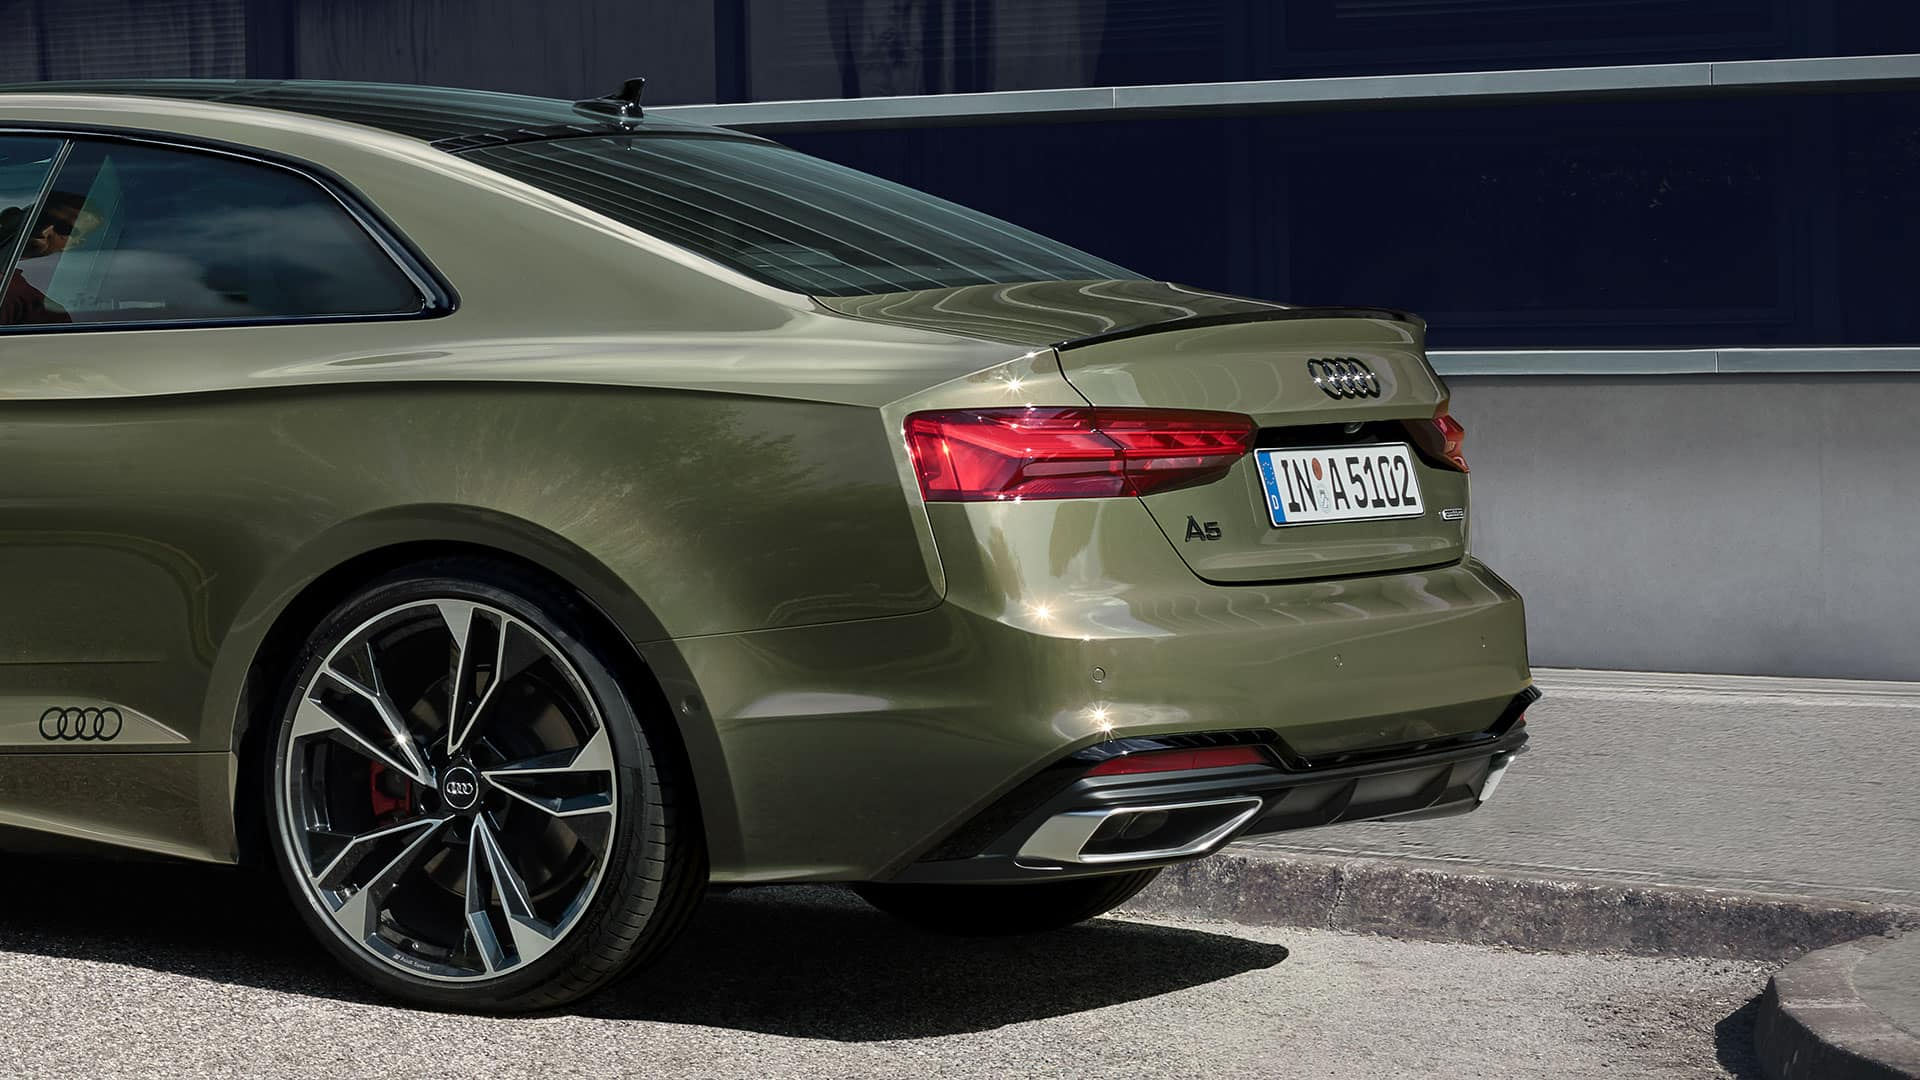 Rear view Audi A5 Coupé